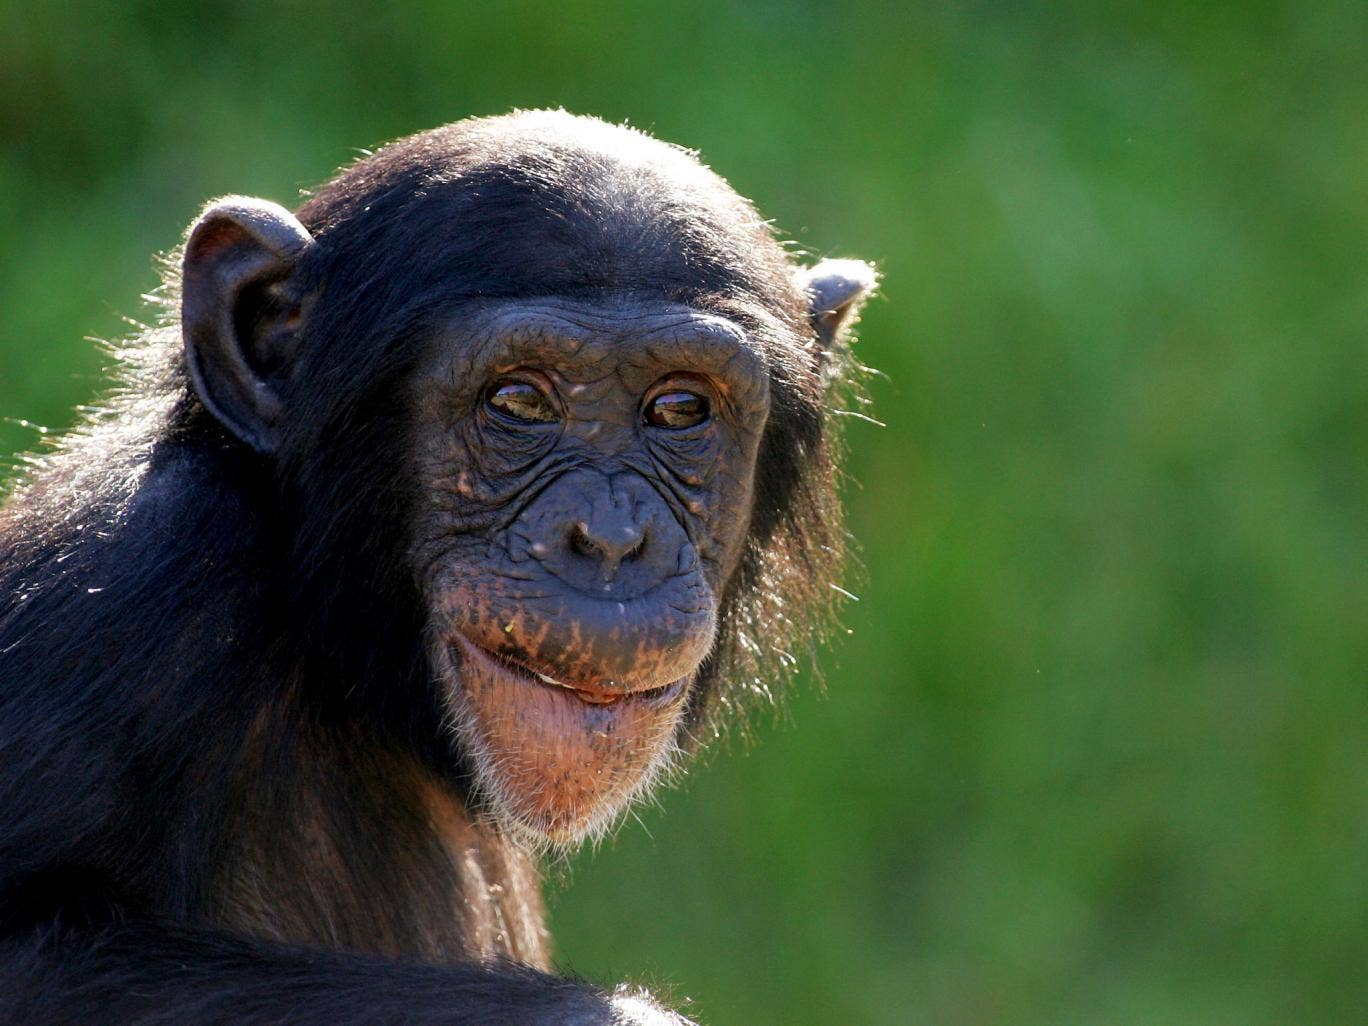 A young chimpanzee watches the media covering the welcome of a new female baby chimpanzee to Sydney's Taronga Zoo on March 4, 2008 in Sydney, Australia. The new infant, as yet unnamed, was born late last week as part of the zoo's breeding program to help